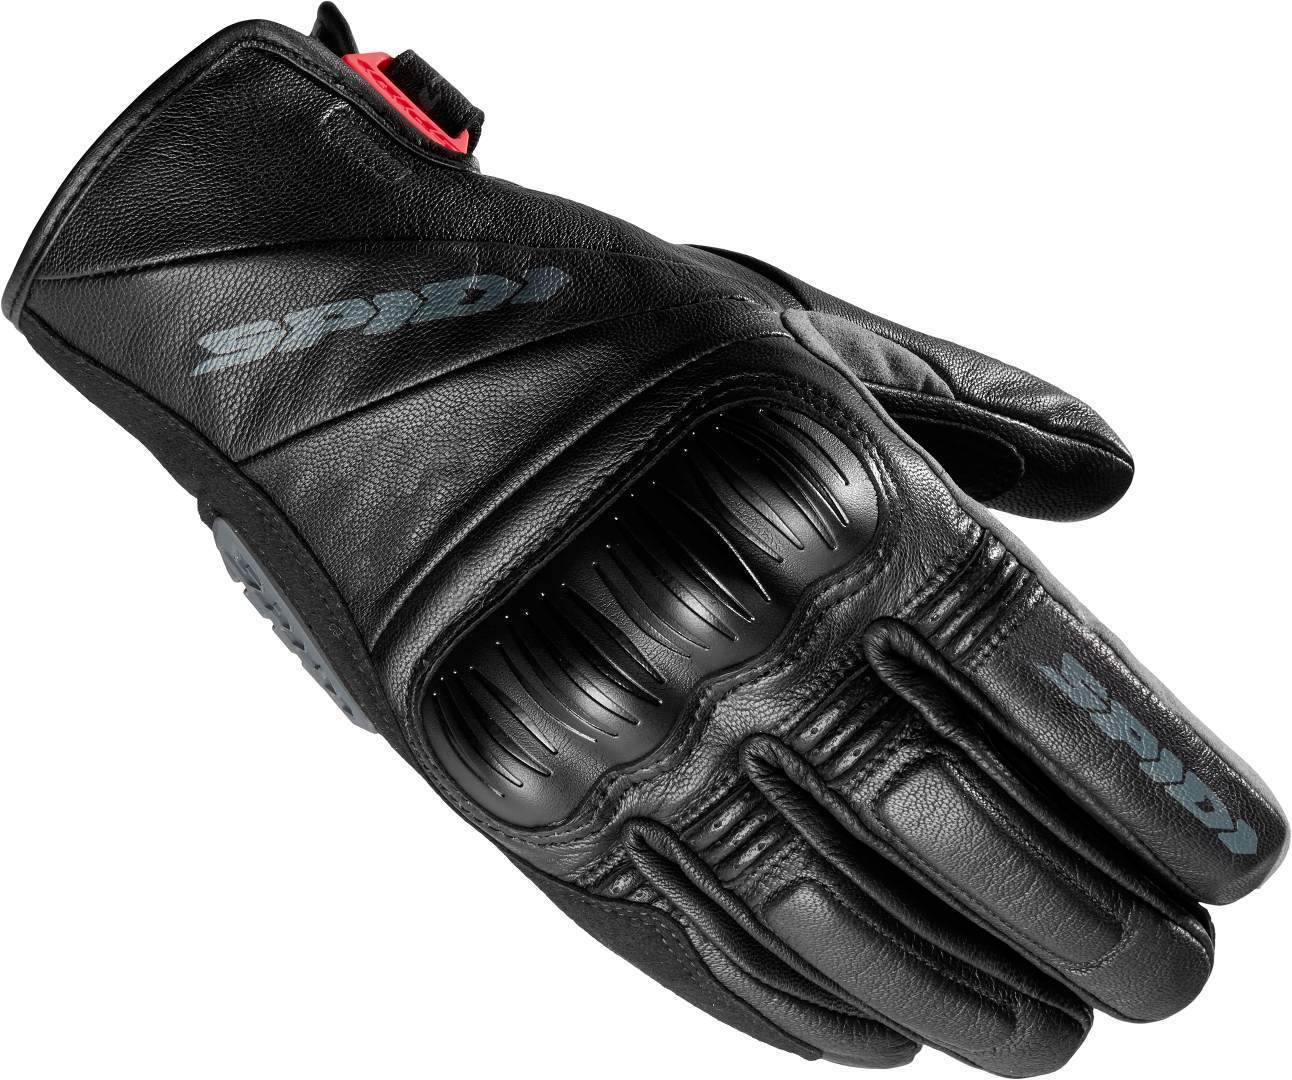 Spidi Ranger LT Gloves Black Grey 3XL